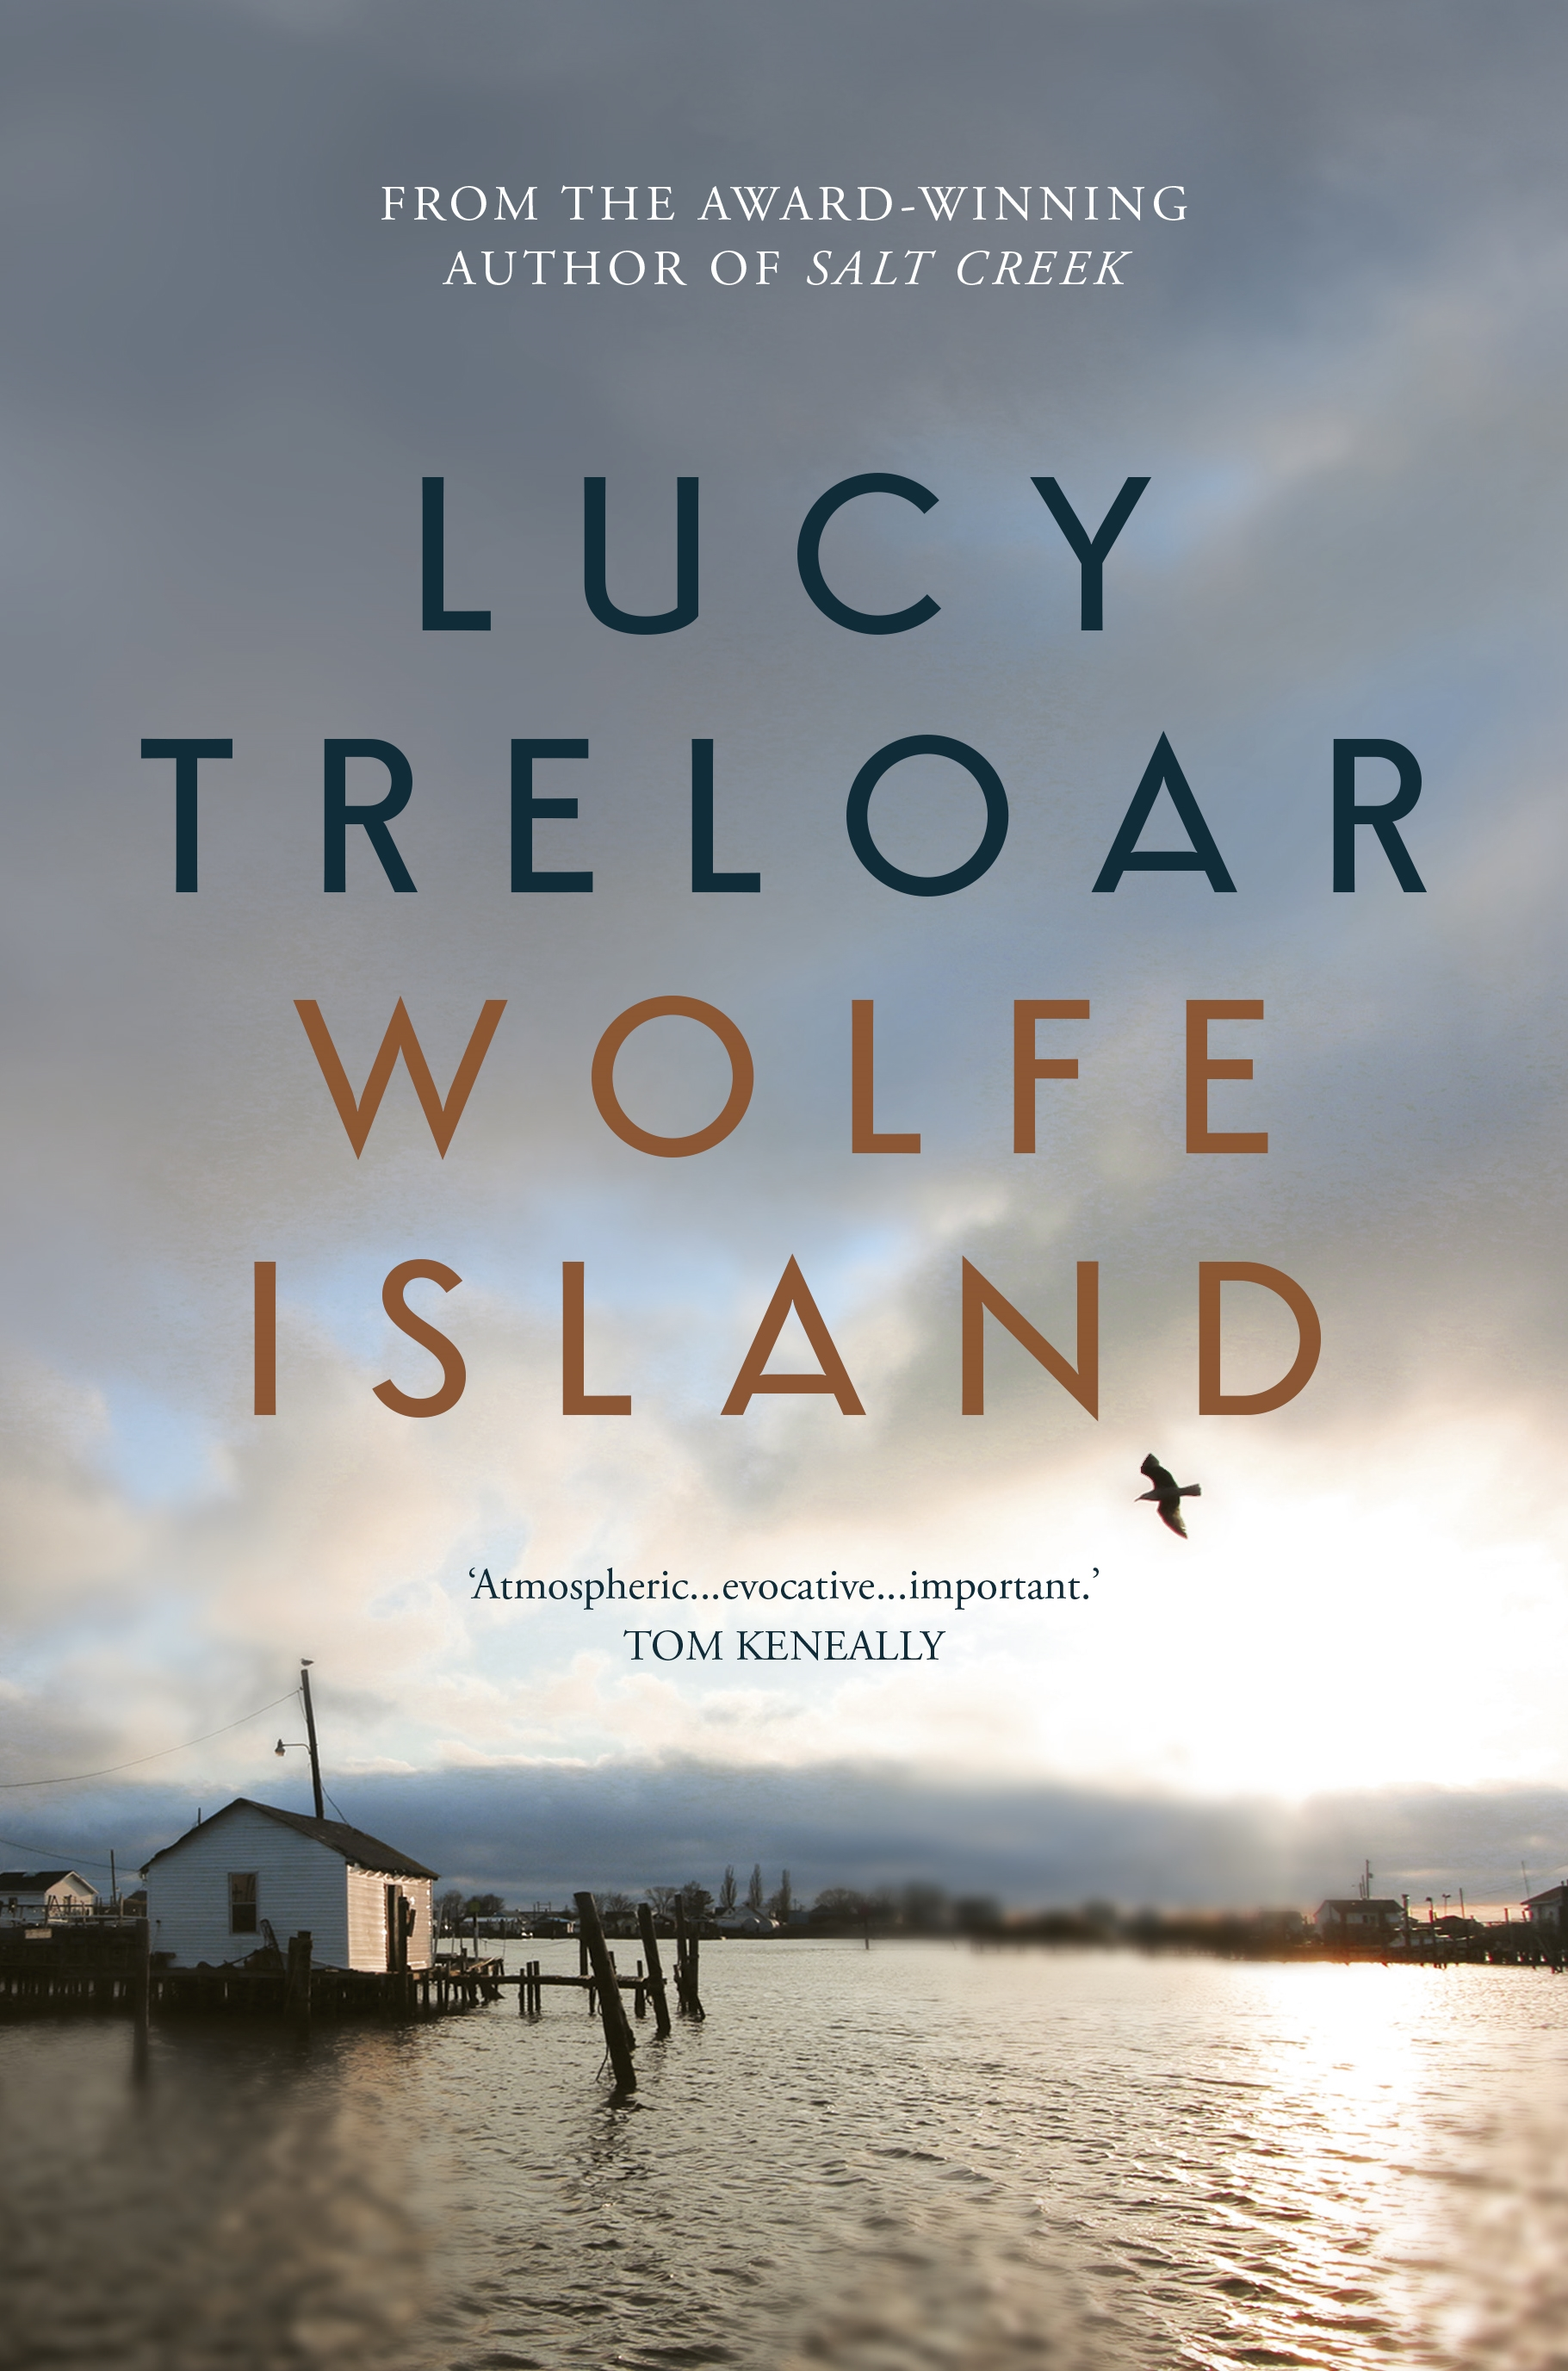 The cover for the book Wolfe Island by Lucy Treloar featuring an old house on a jetty